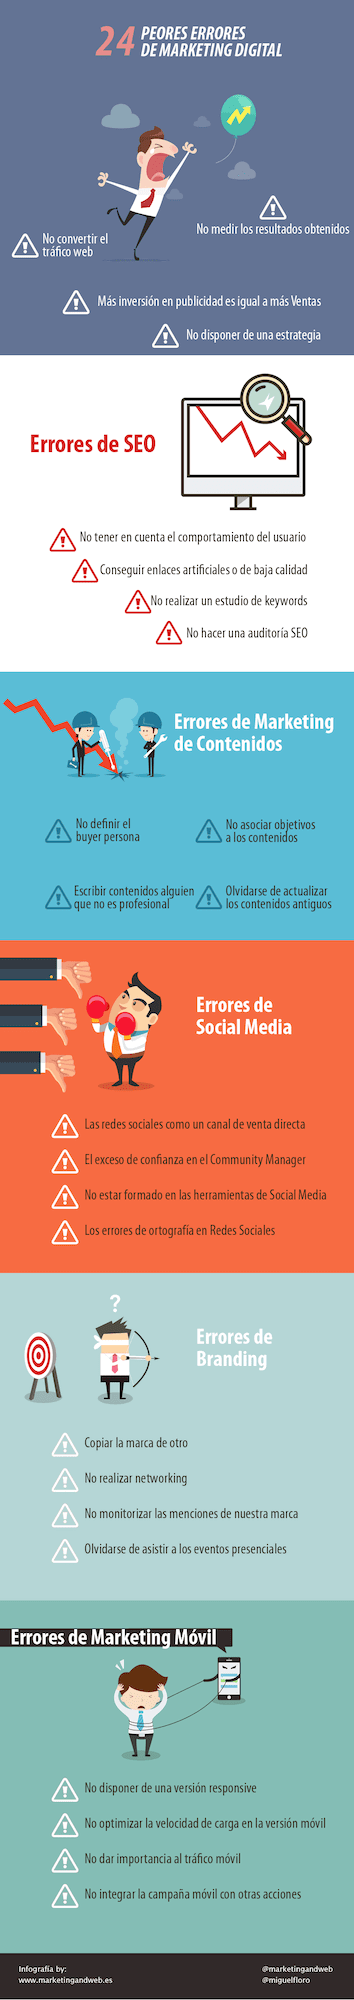 errores de marketing digital infografia